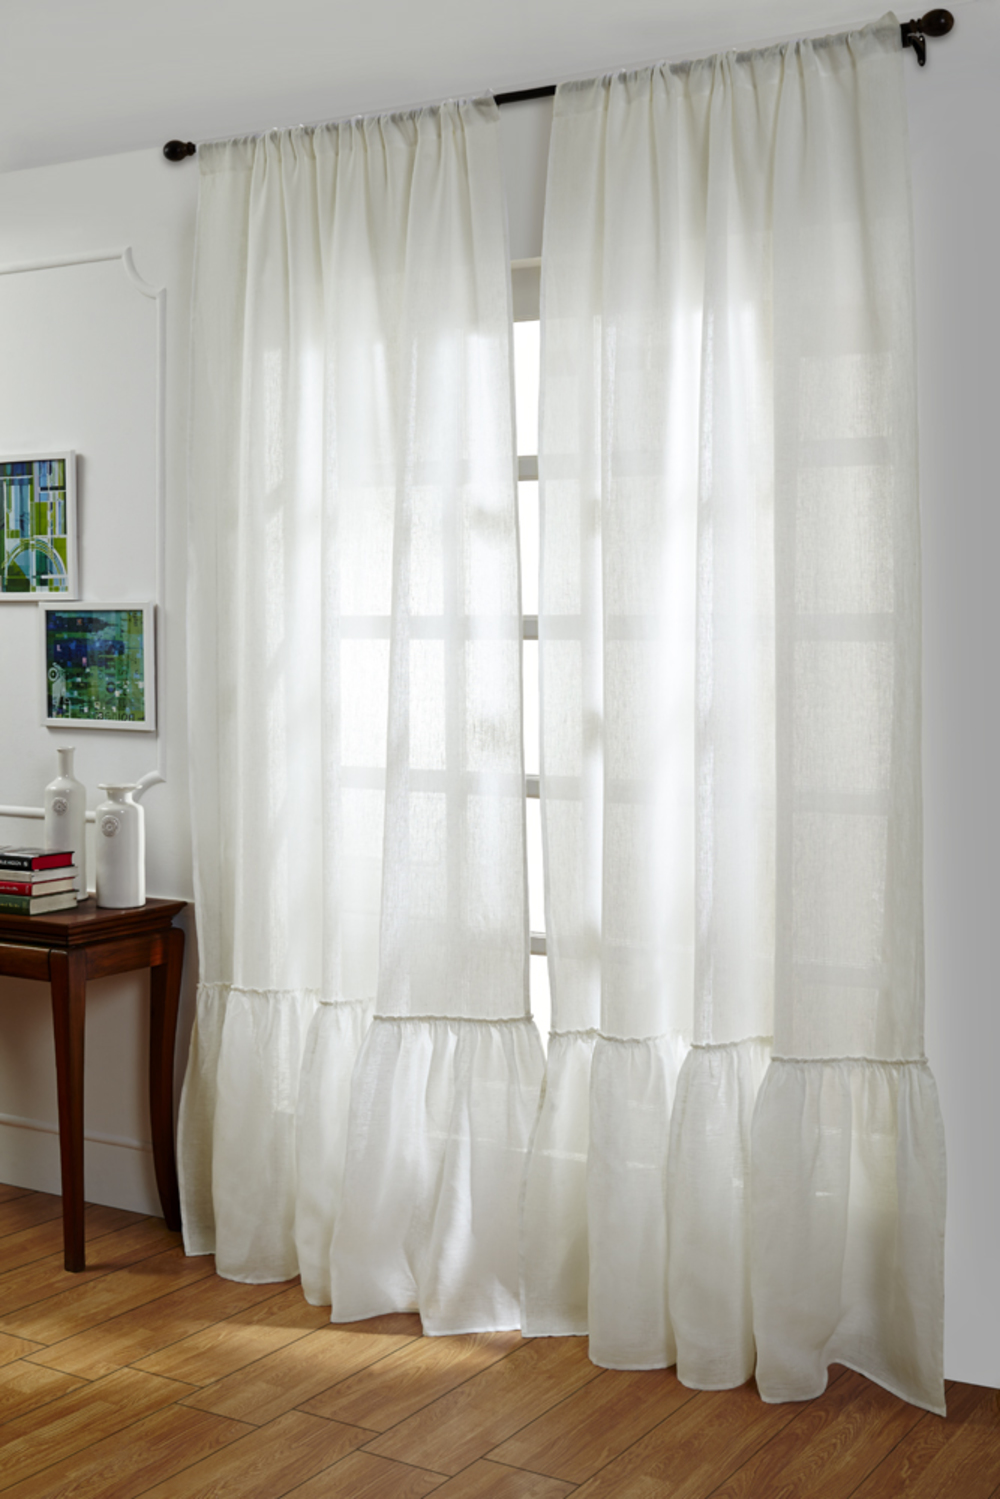 Amity Imports - Caprice White Linen Curtains